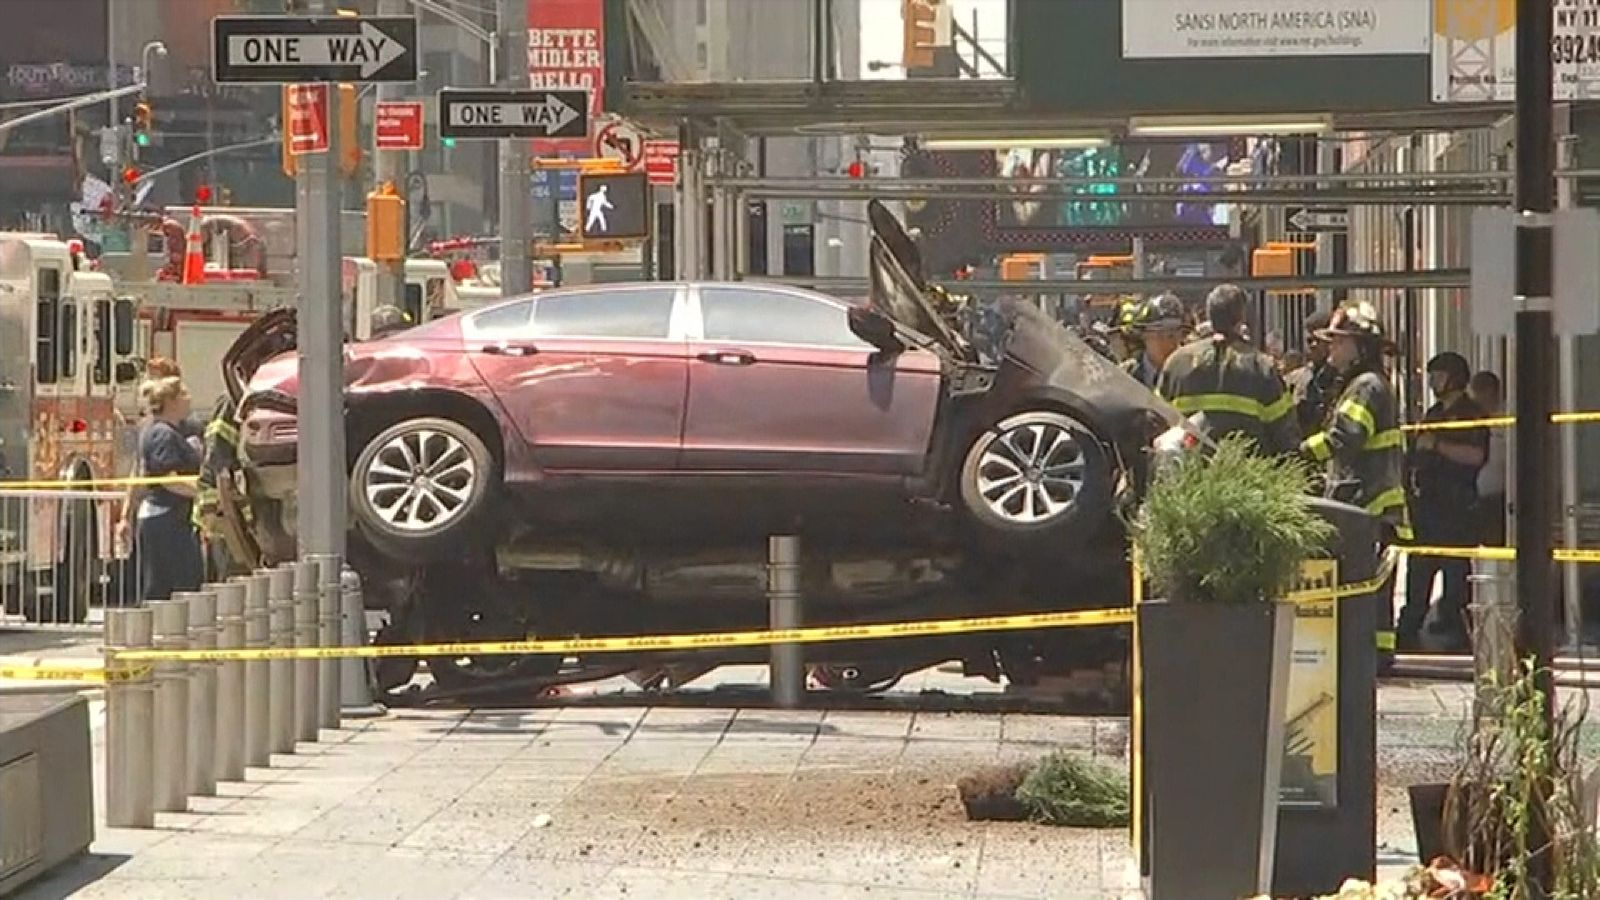 Speeding auto hits pedestrians in Times Square